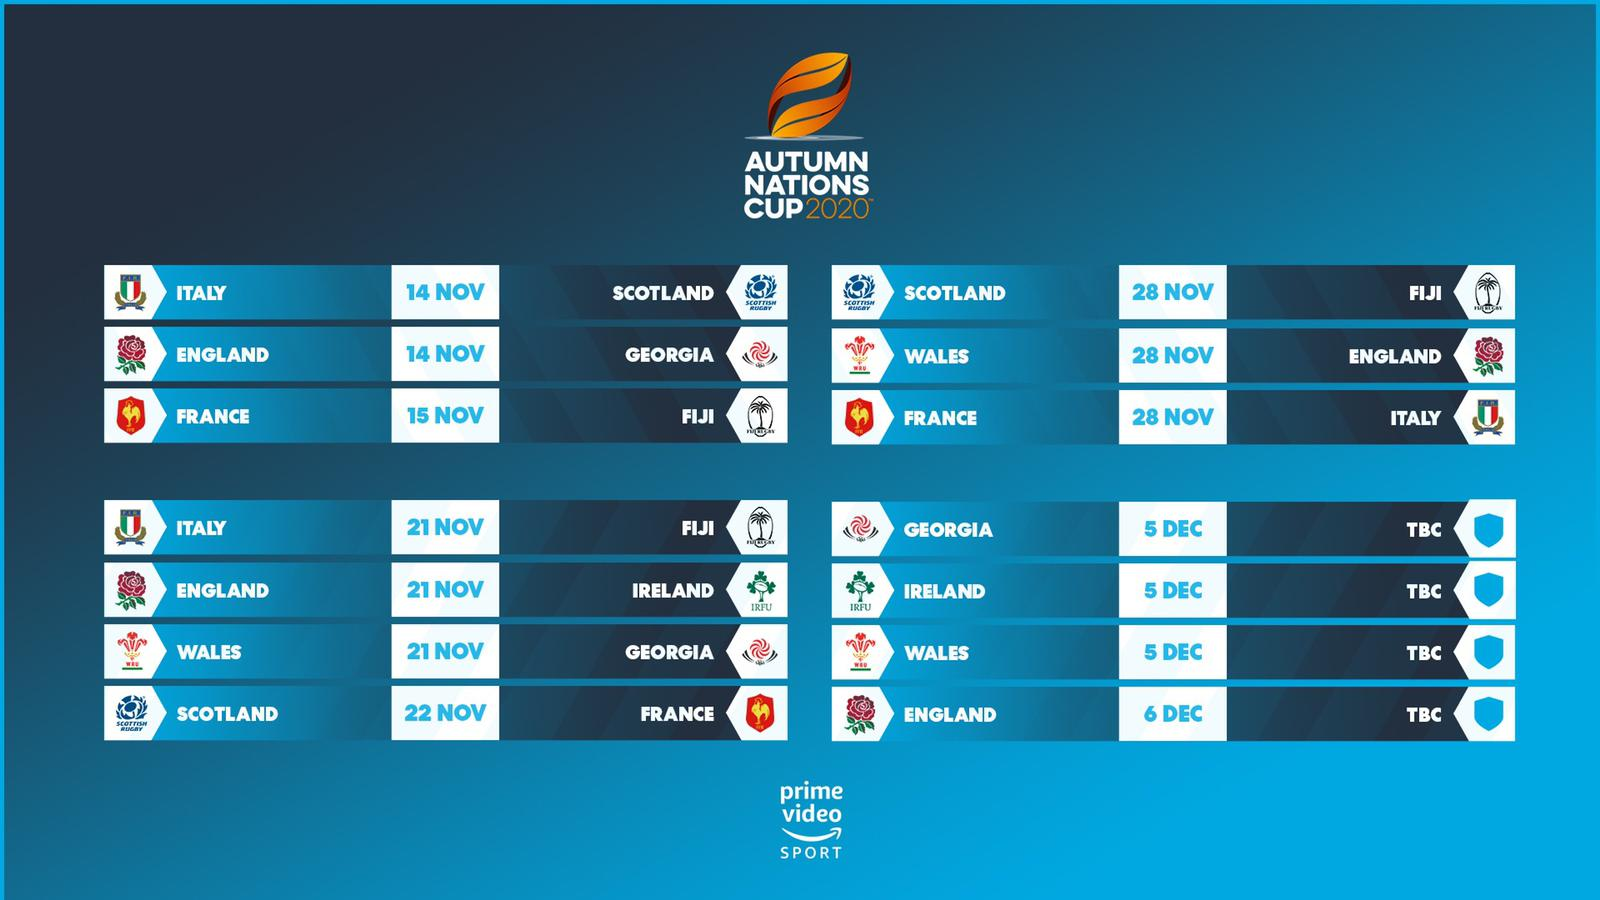 Rugby chiefs unveil Autumn Nations Cup